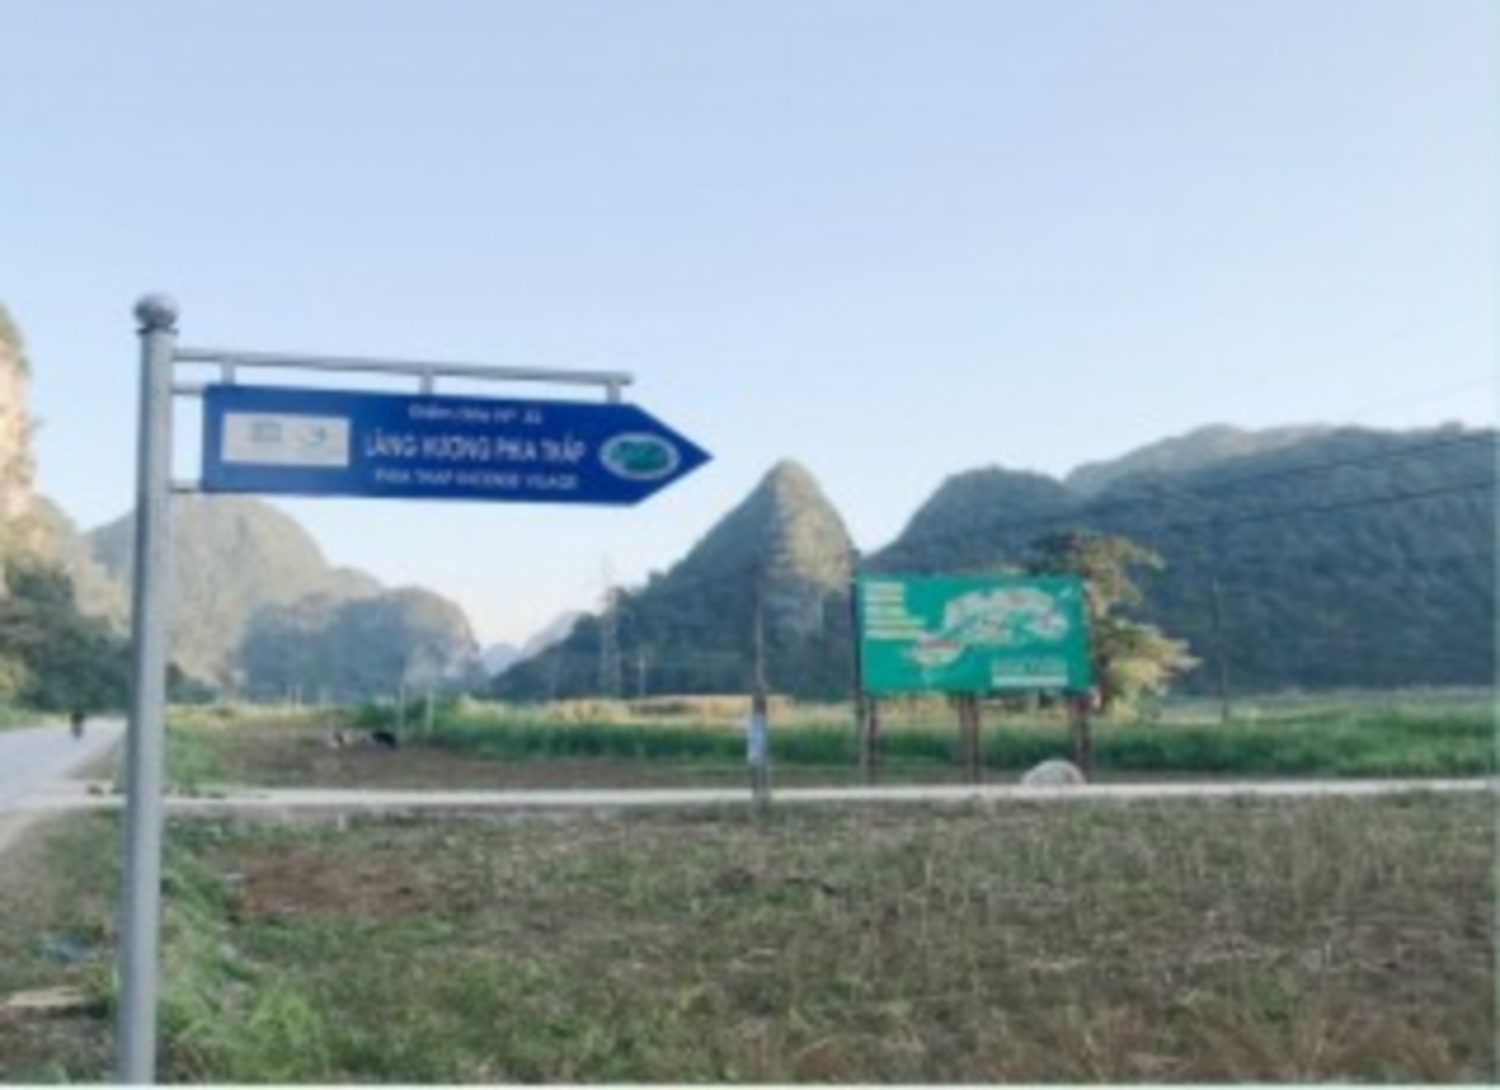 Survey on direction panel positioning for heritage site in Non nuoc Cao Bang UNESCO global geopark